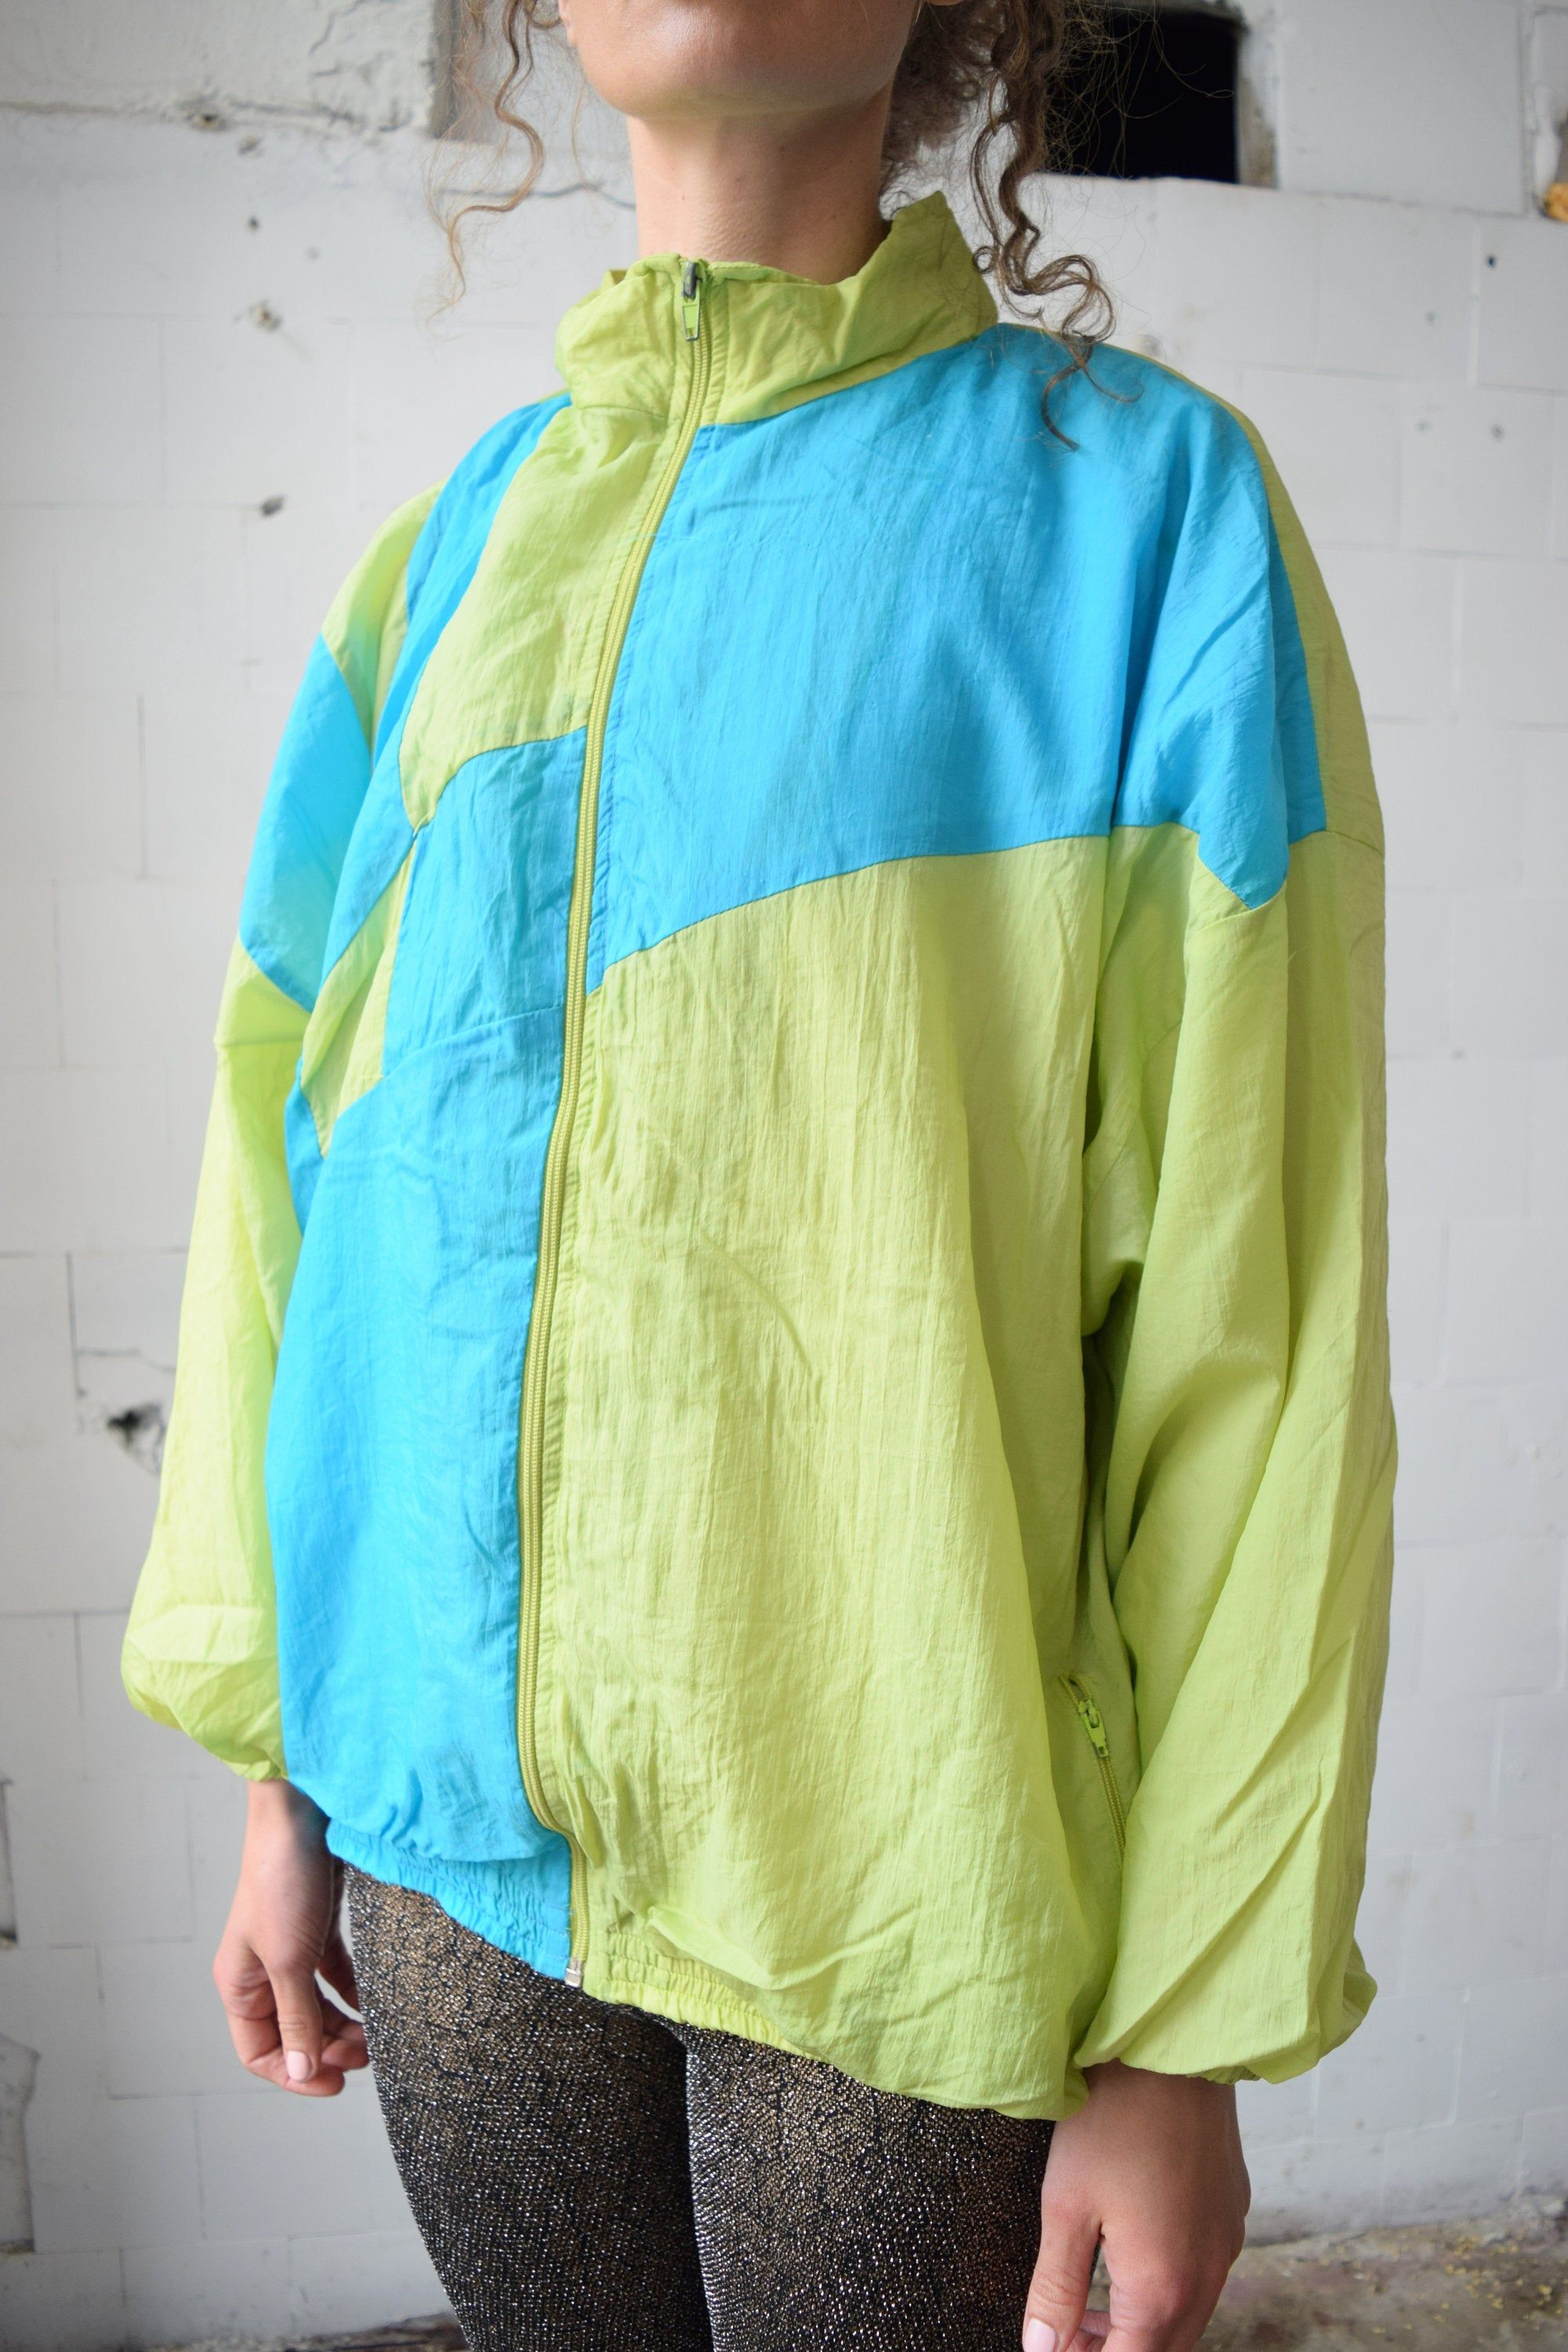 NEON vintage workout jacket, Green and blue, Spring